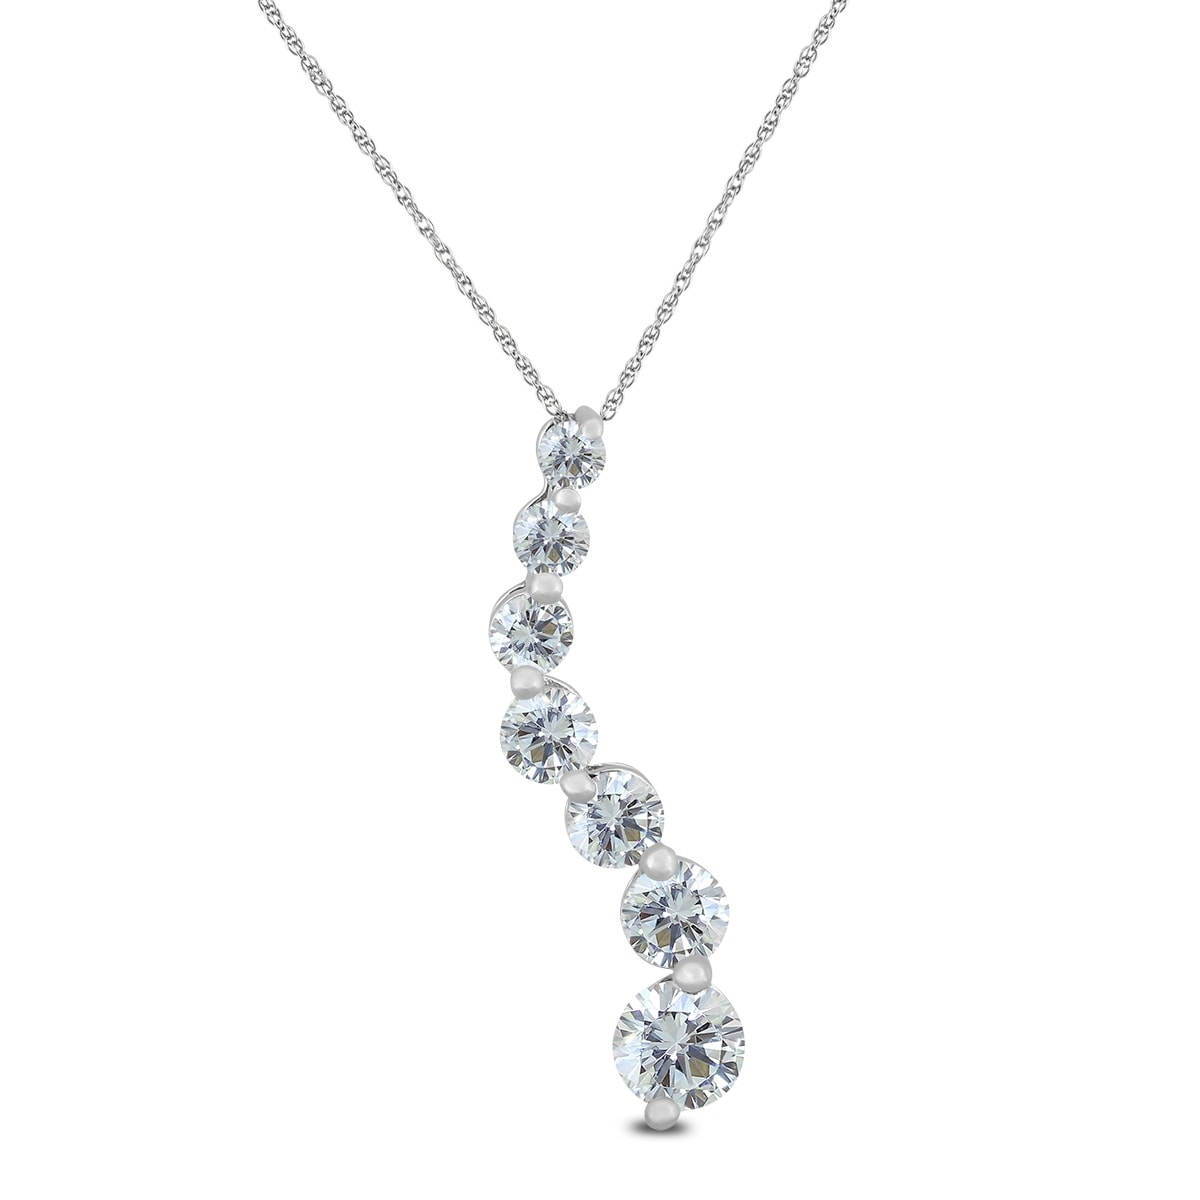 015645f39 Shop 1/4 Carat TW Diamond Journey Pendant in 10K White Gold - On Sale -  Free Shipping Today - Overstock - 20751944